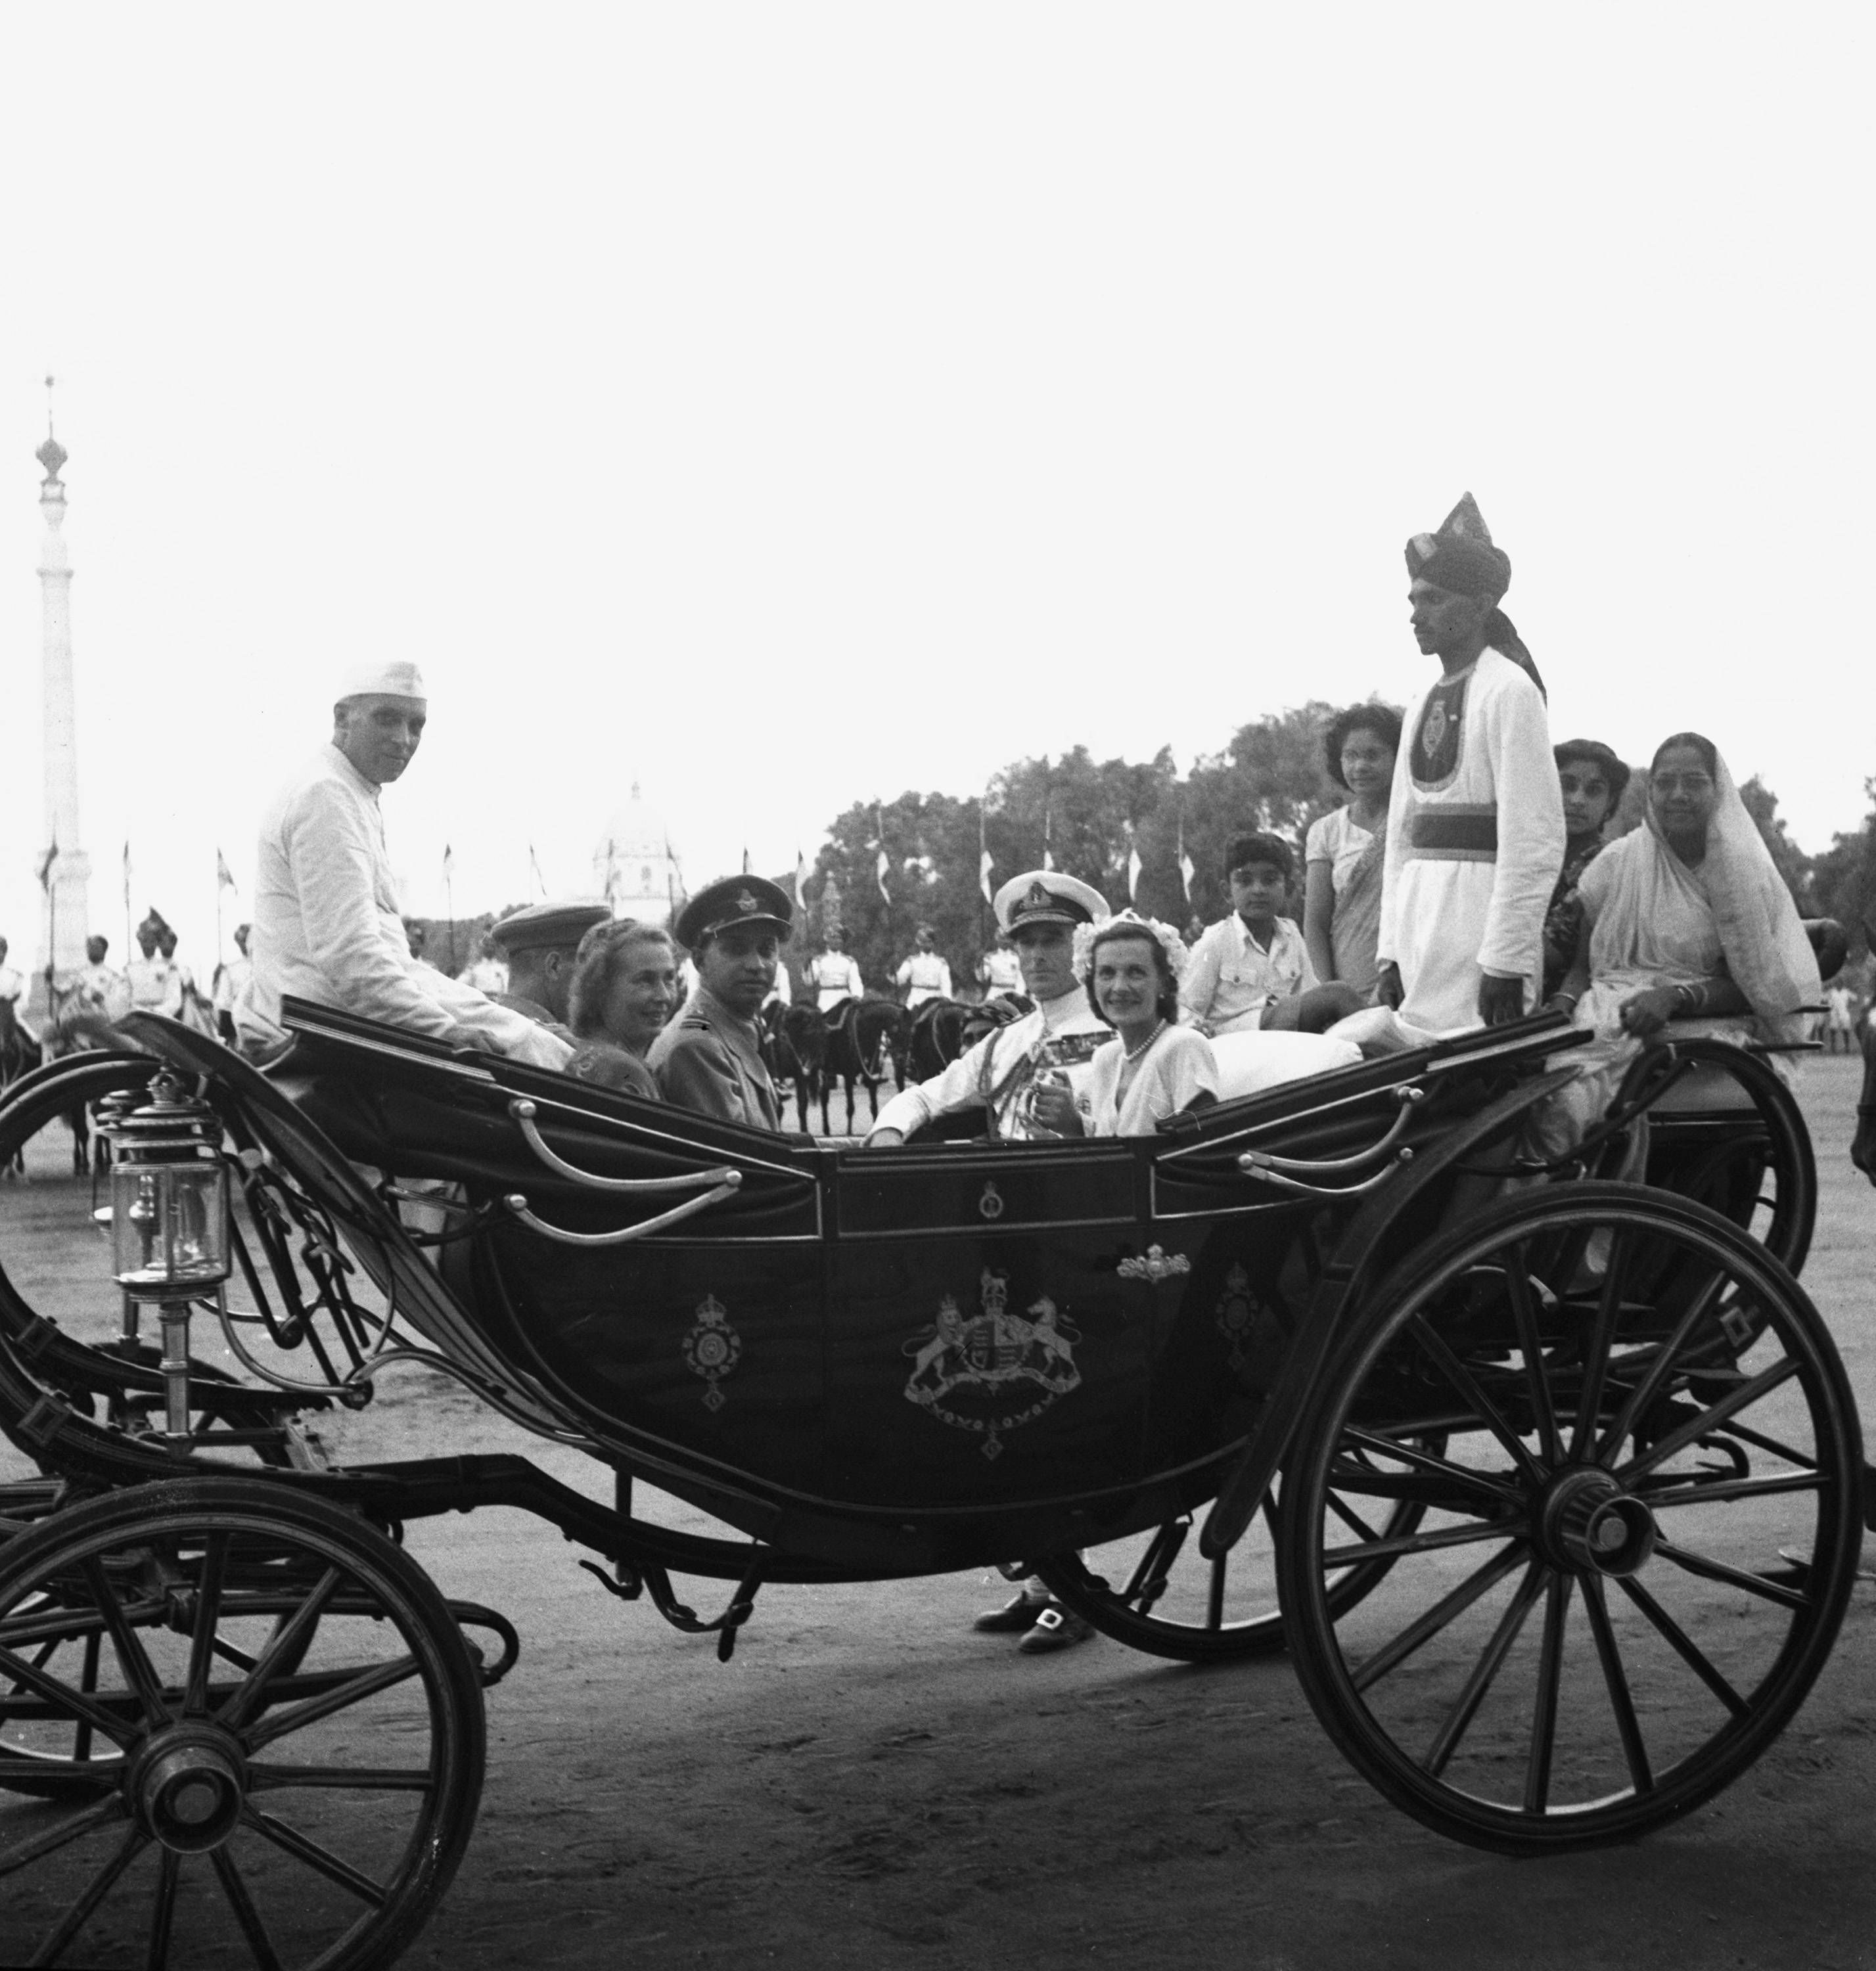 Jawaharlal Nehru rides in a coach with Lord and Lady Mountbatten at India's  Independence Day celebrations in New Delhi, August 15, 1947. With them are  three wom… | History of india, India